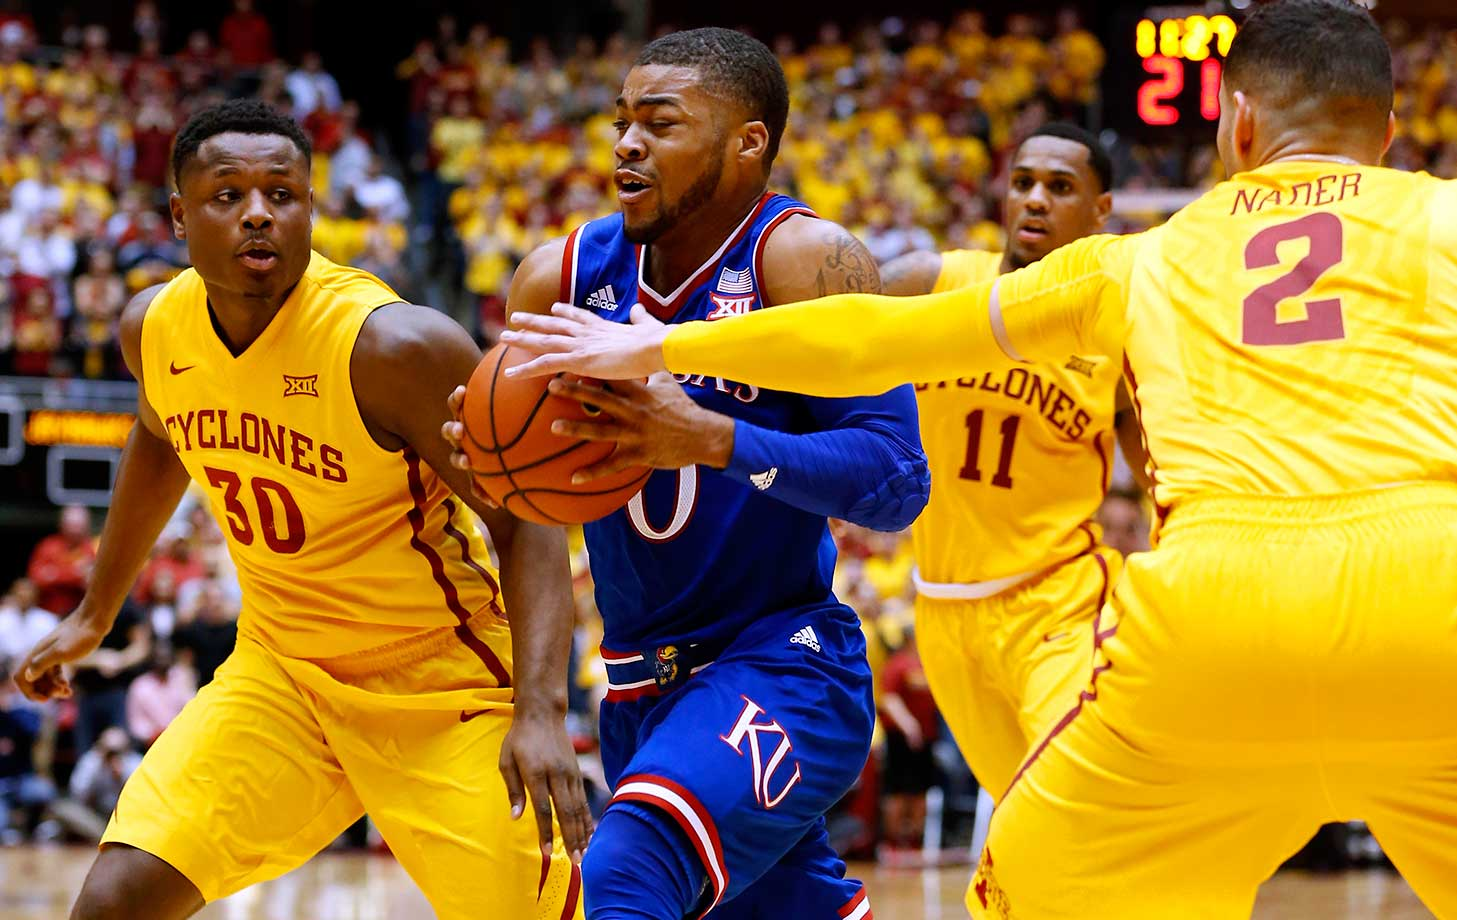 Frank Mason III of the Kansas Jayhawks drives then ball as Deonte Burton (left), Monte Morris (11) and Abdel Nader (2( of the Iowa State Cyclones put pressure on in Ames, Iowa. The Cyclones won 85-72.